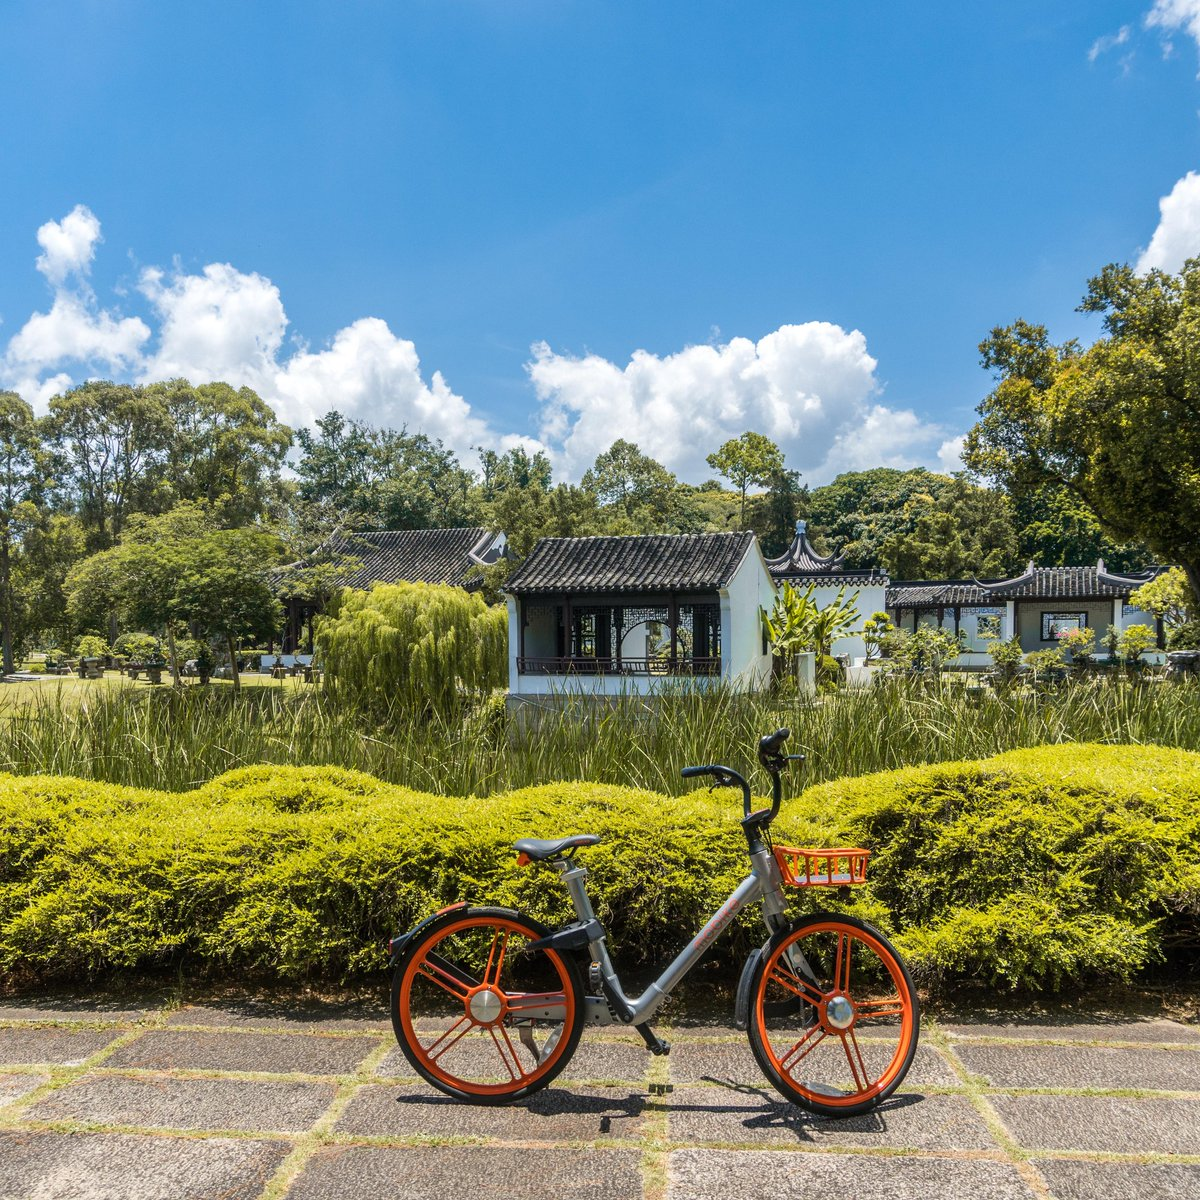 Opened in 1975, the Singapore Chinese and Japanese garden offers many architectures and sculptures! 🌿 This Chinese Garden in the West is a tranquil and peaceful place one should definitely not miss! 🚲  #Mobike there today! https://t.co/iVcSW76nmp